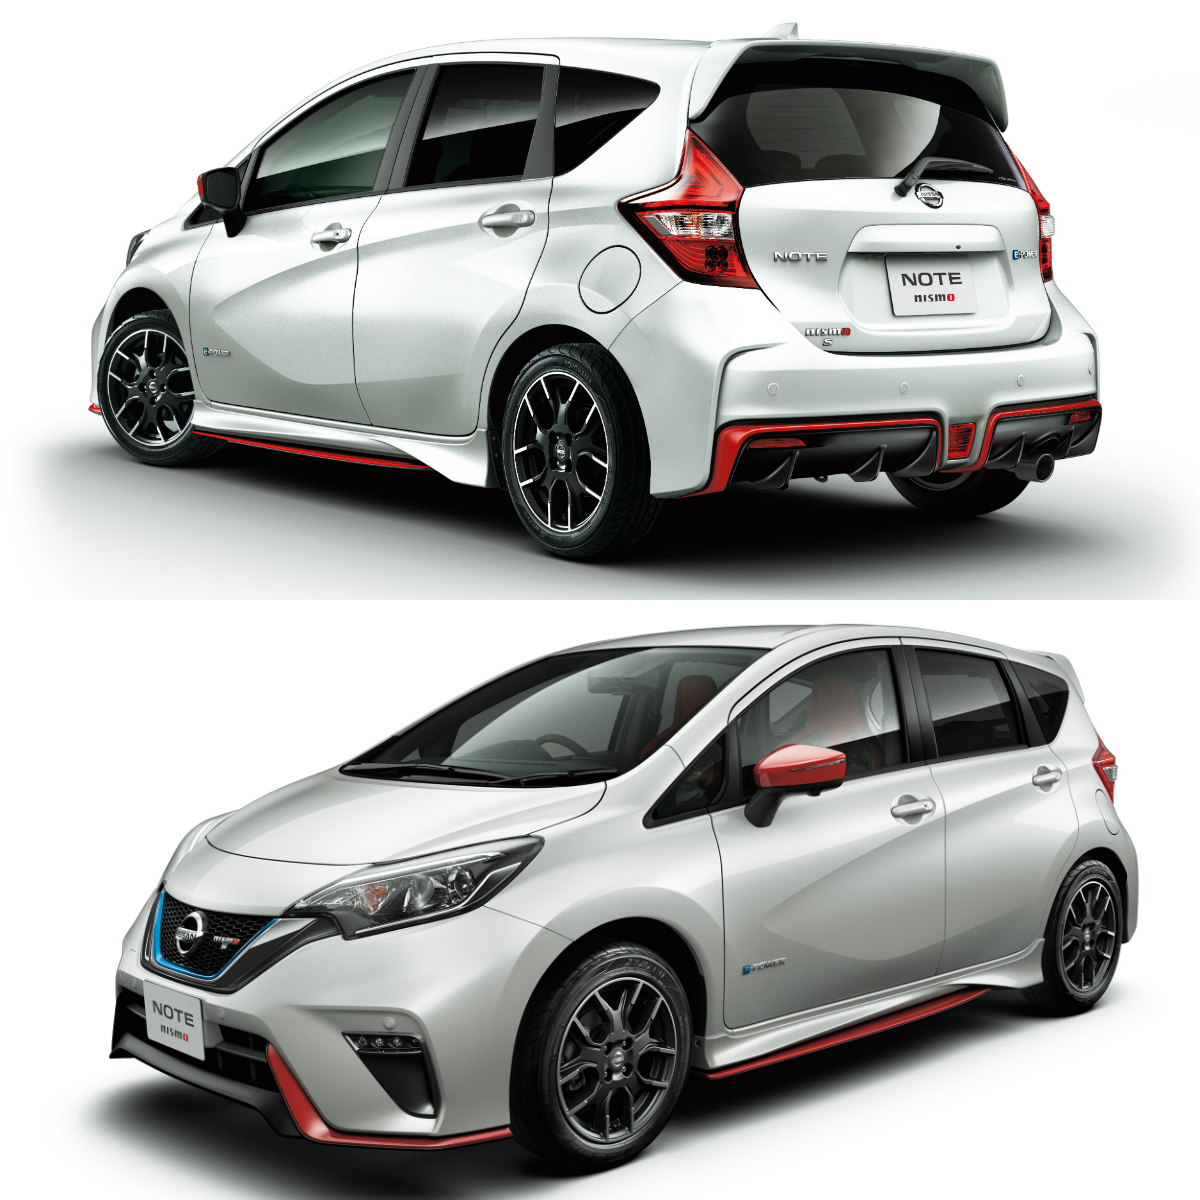 The higher-spec version of the Note e-Power Nismo offers customers increased power and sportiness, and is part of Nissan's electrification strategy to sell one million electrified vehicles annually worldwide by fiscal year 2022.